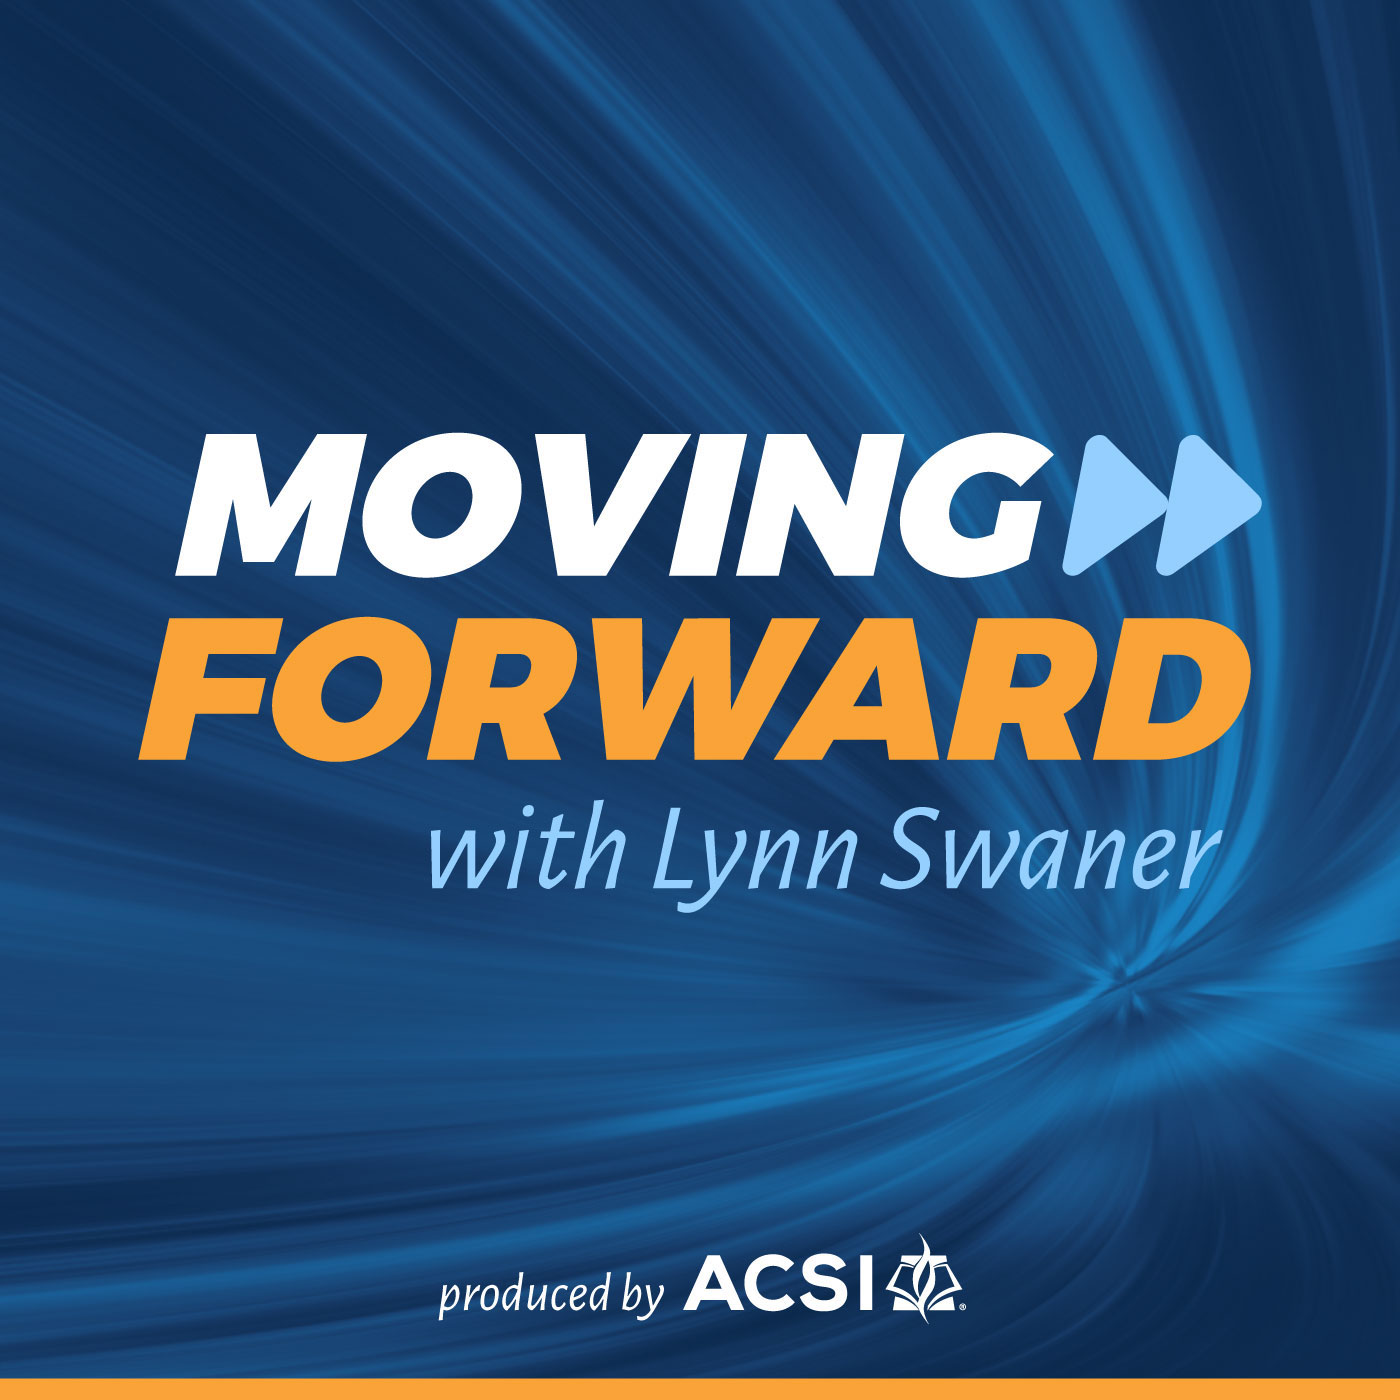 ACSI: Moving Forward with Lynn Swaner